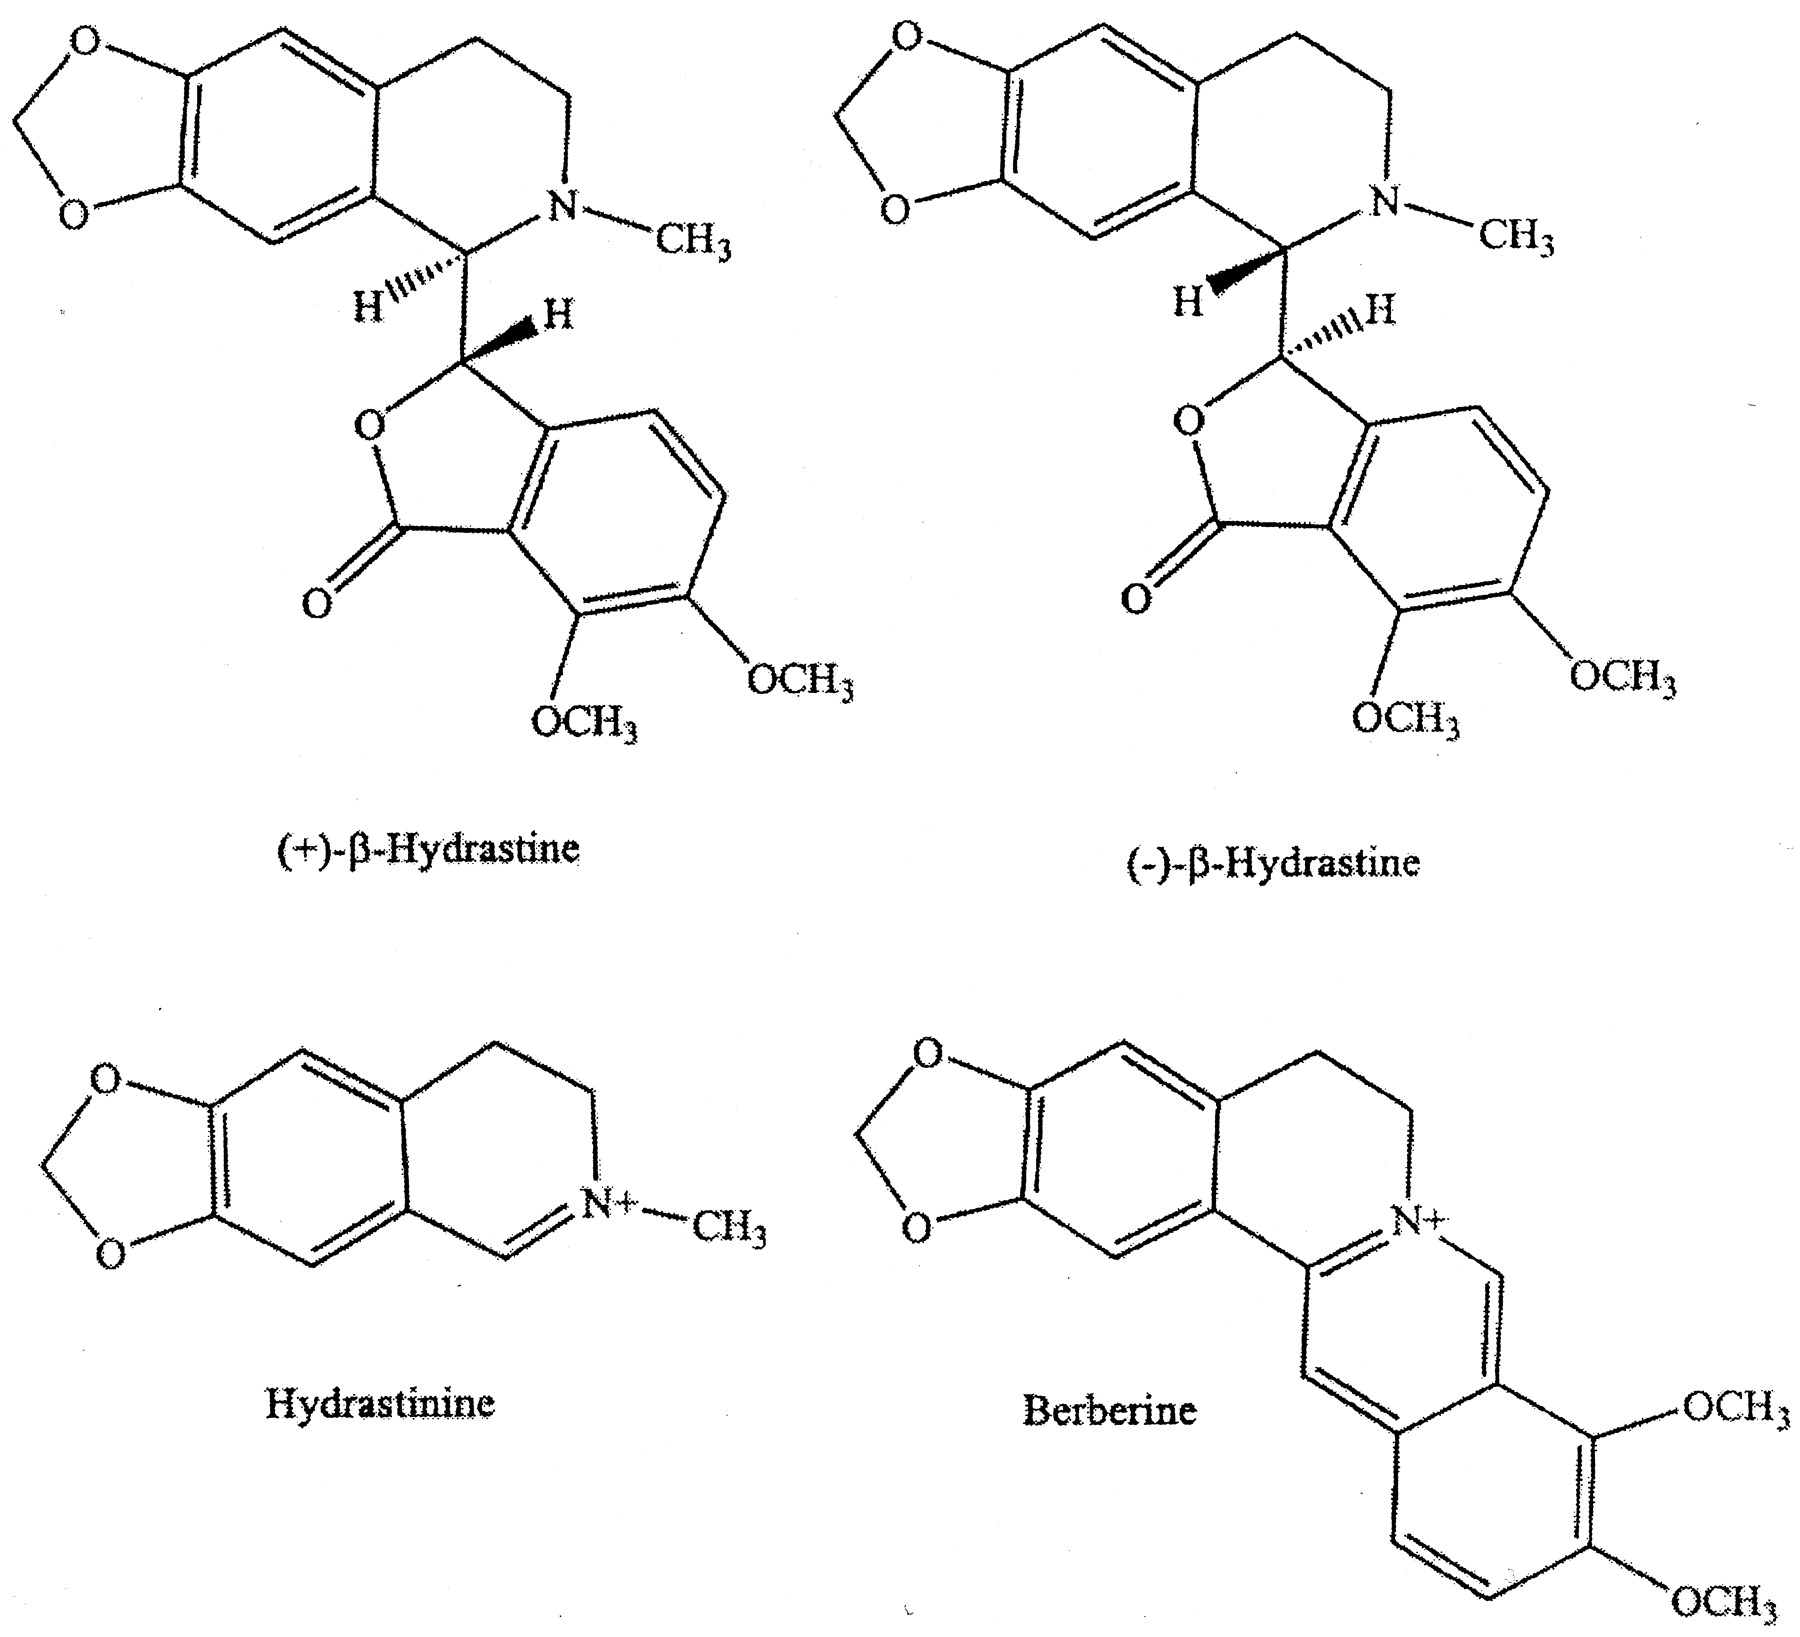 HUMAN CYTOCHROME P450 INHIBITION AND METABOLIC